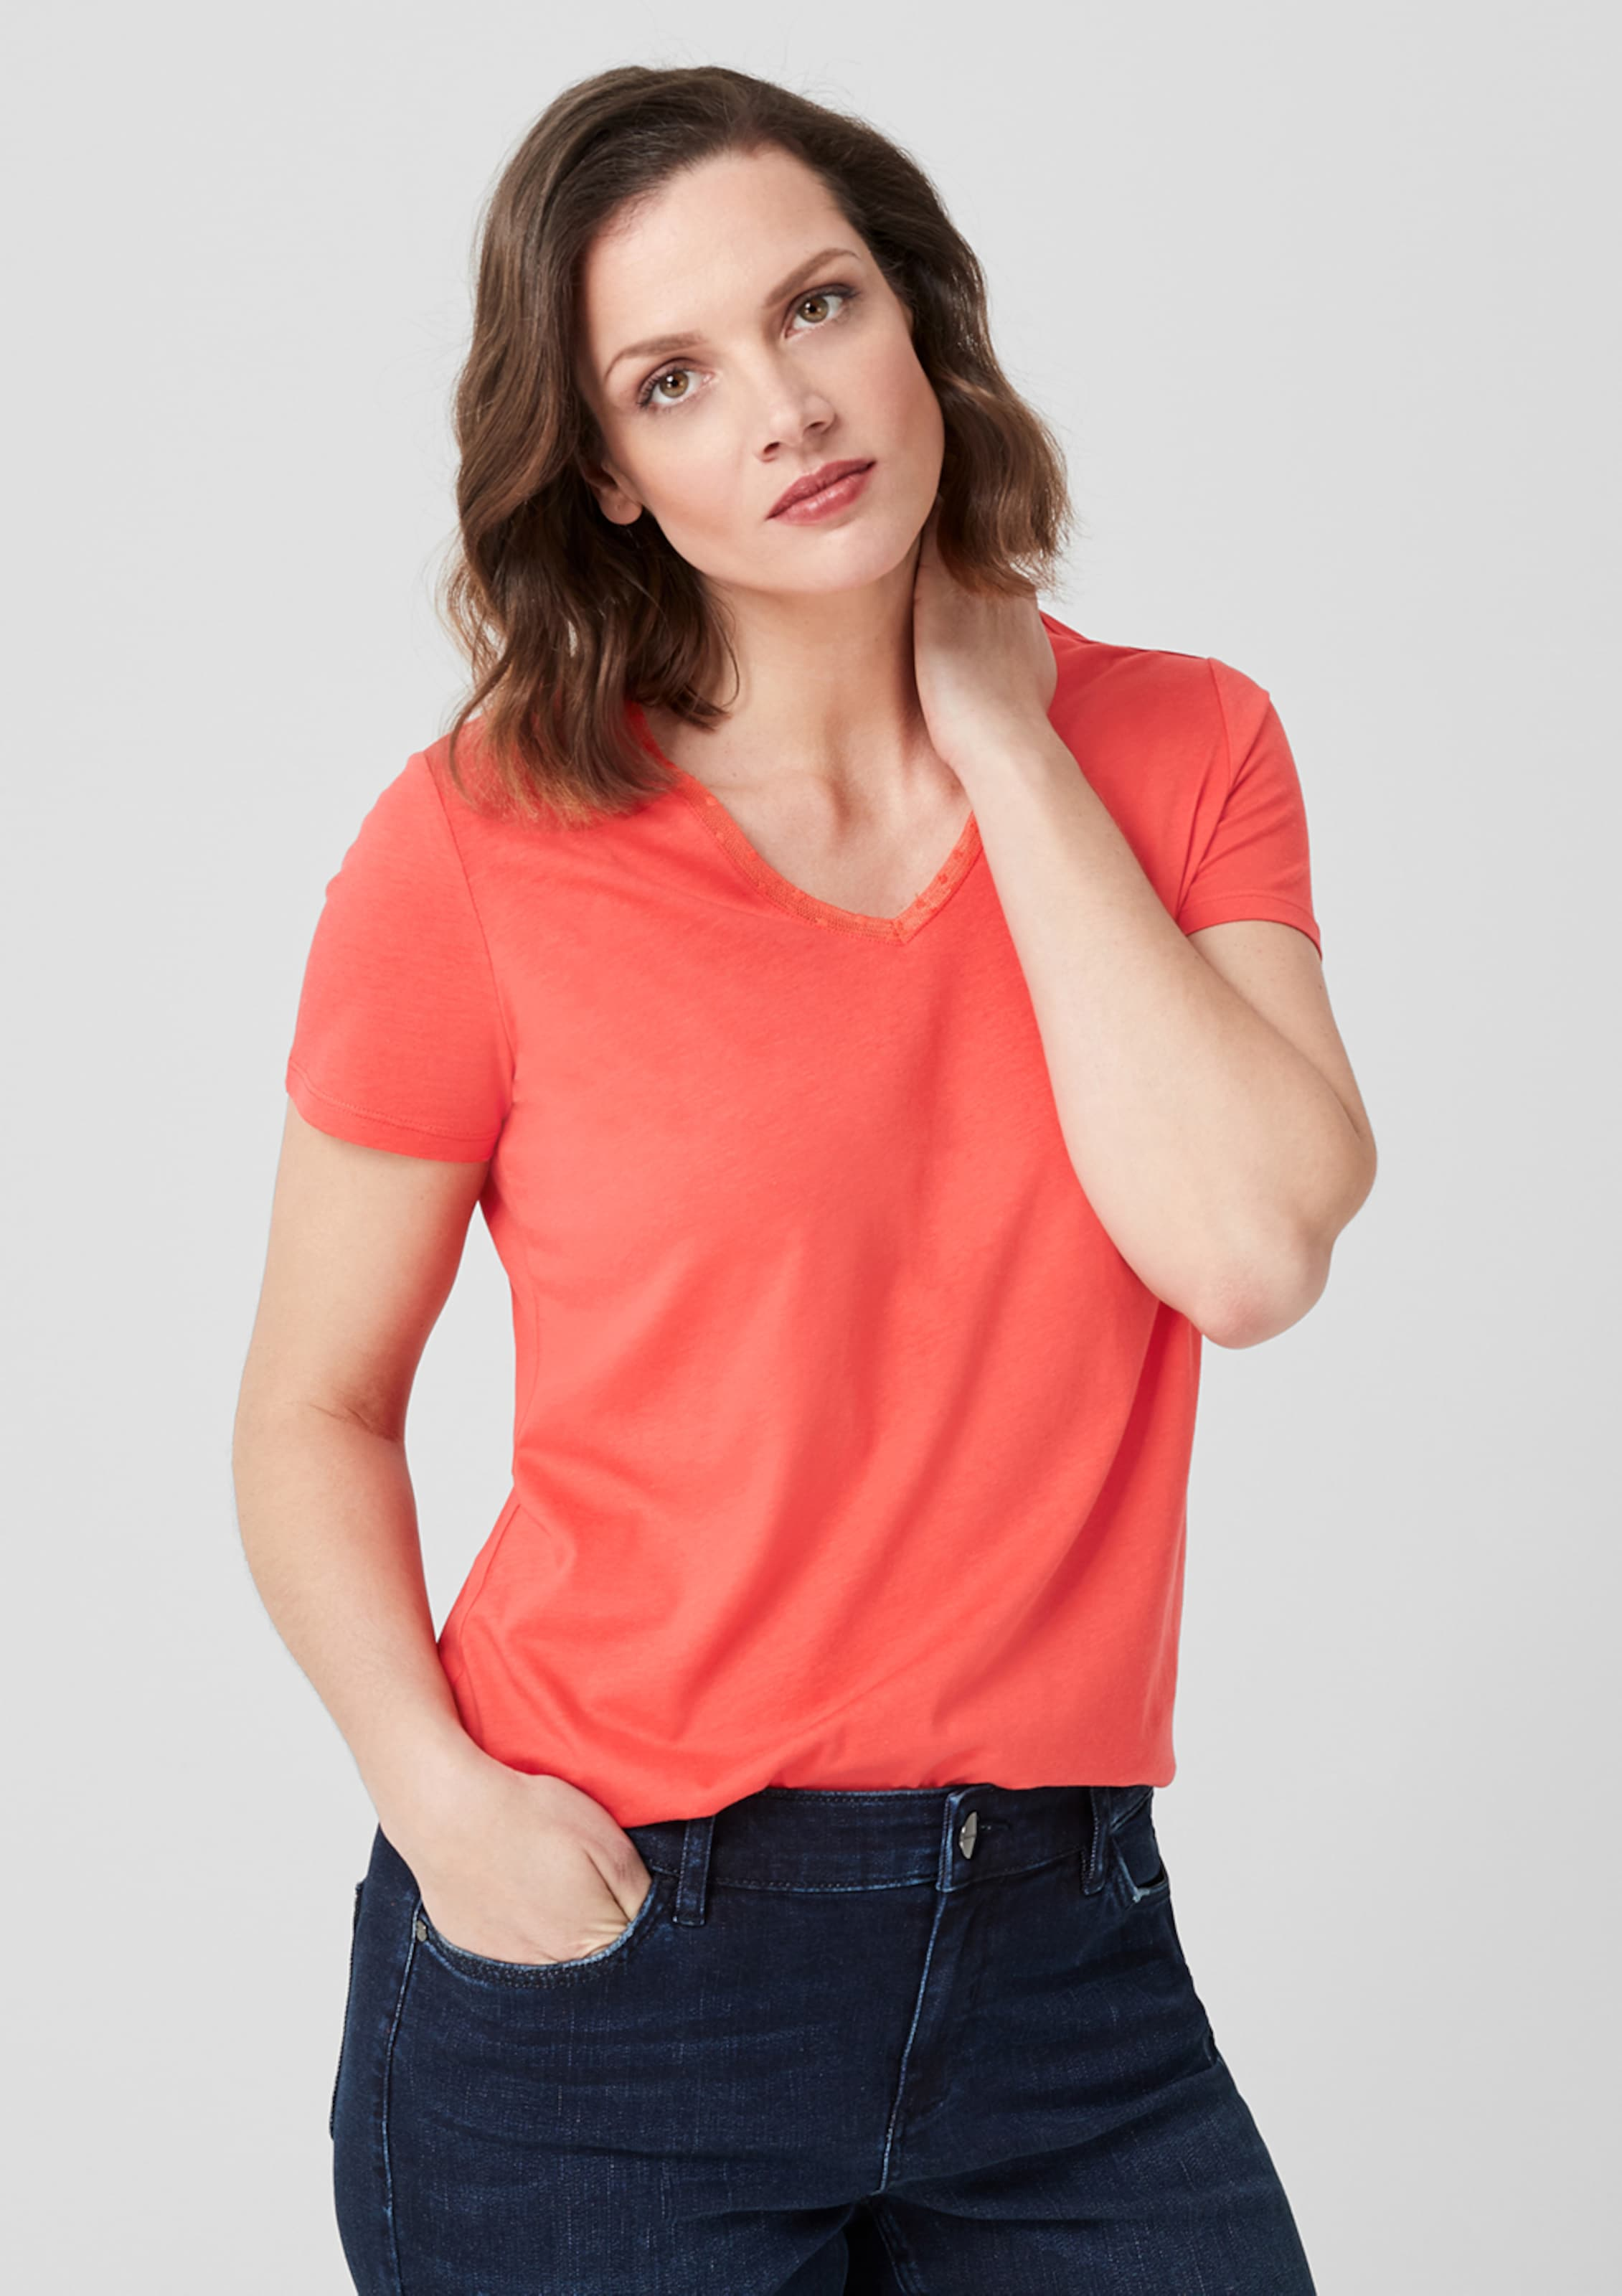 In Orangerot Triangle Triangle Jerseyshirt In Jerseyshirt Triangle Orangerot Triangle In Orangerot Jerseyshirt Y7fb6gy